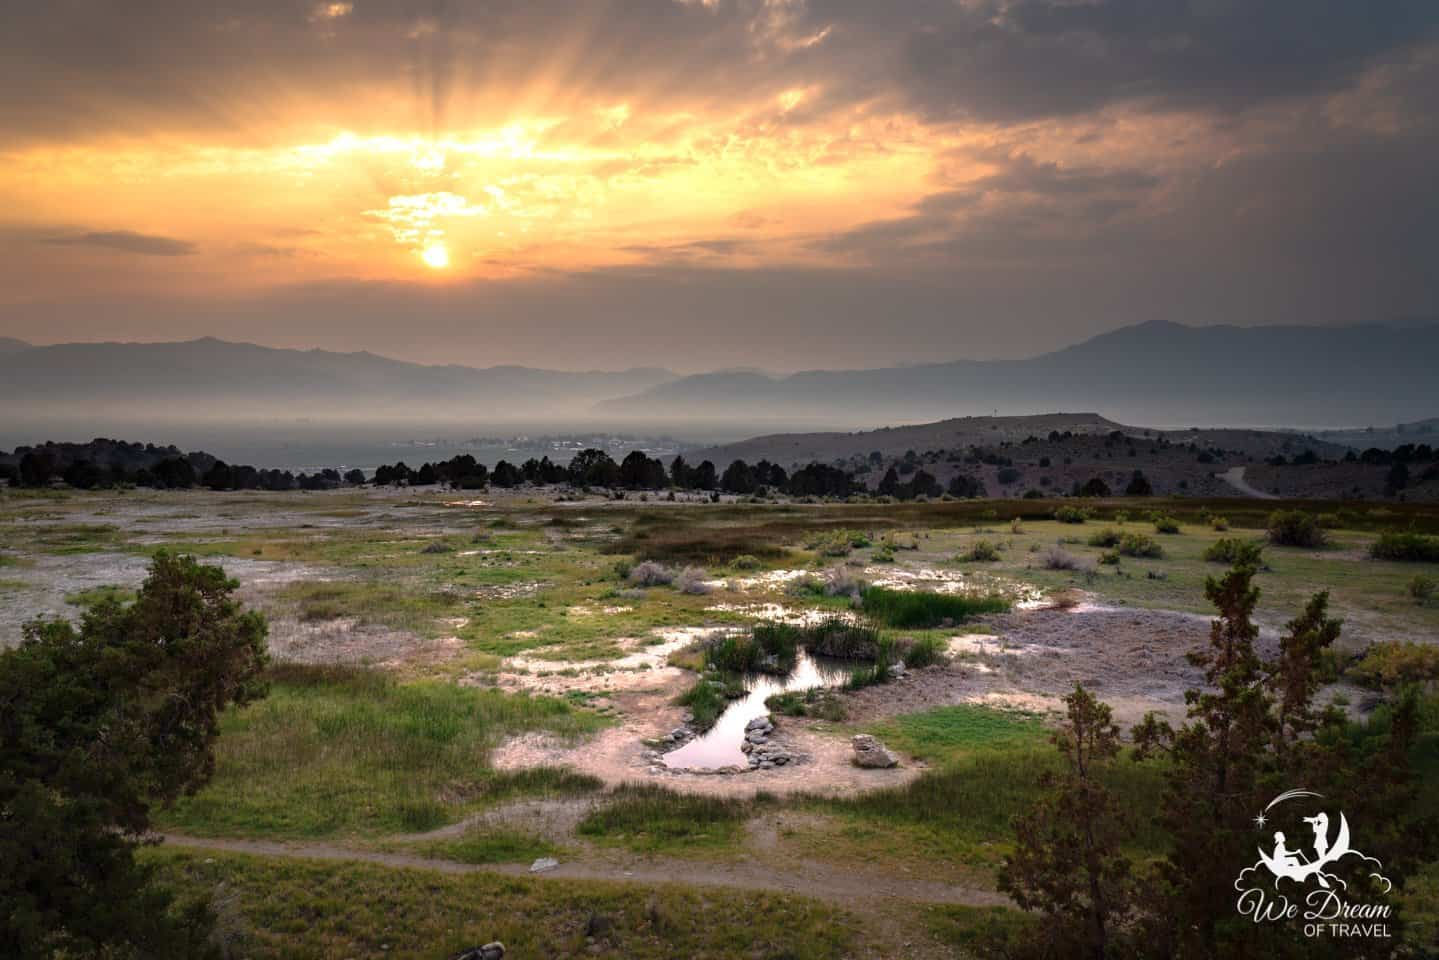 Sunset over the mountains behind one of the secret hot springs at Travertine.